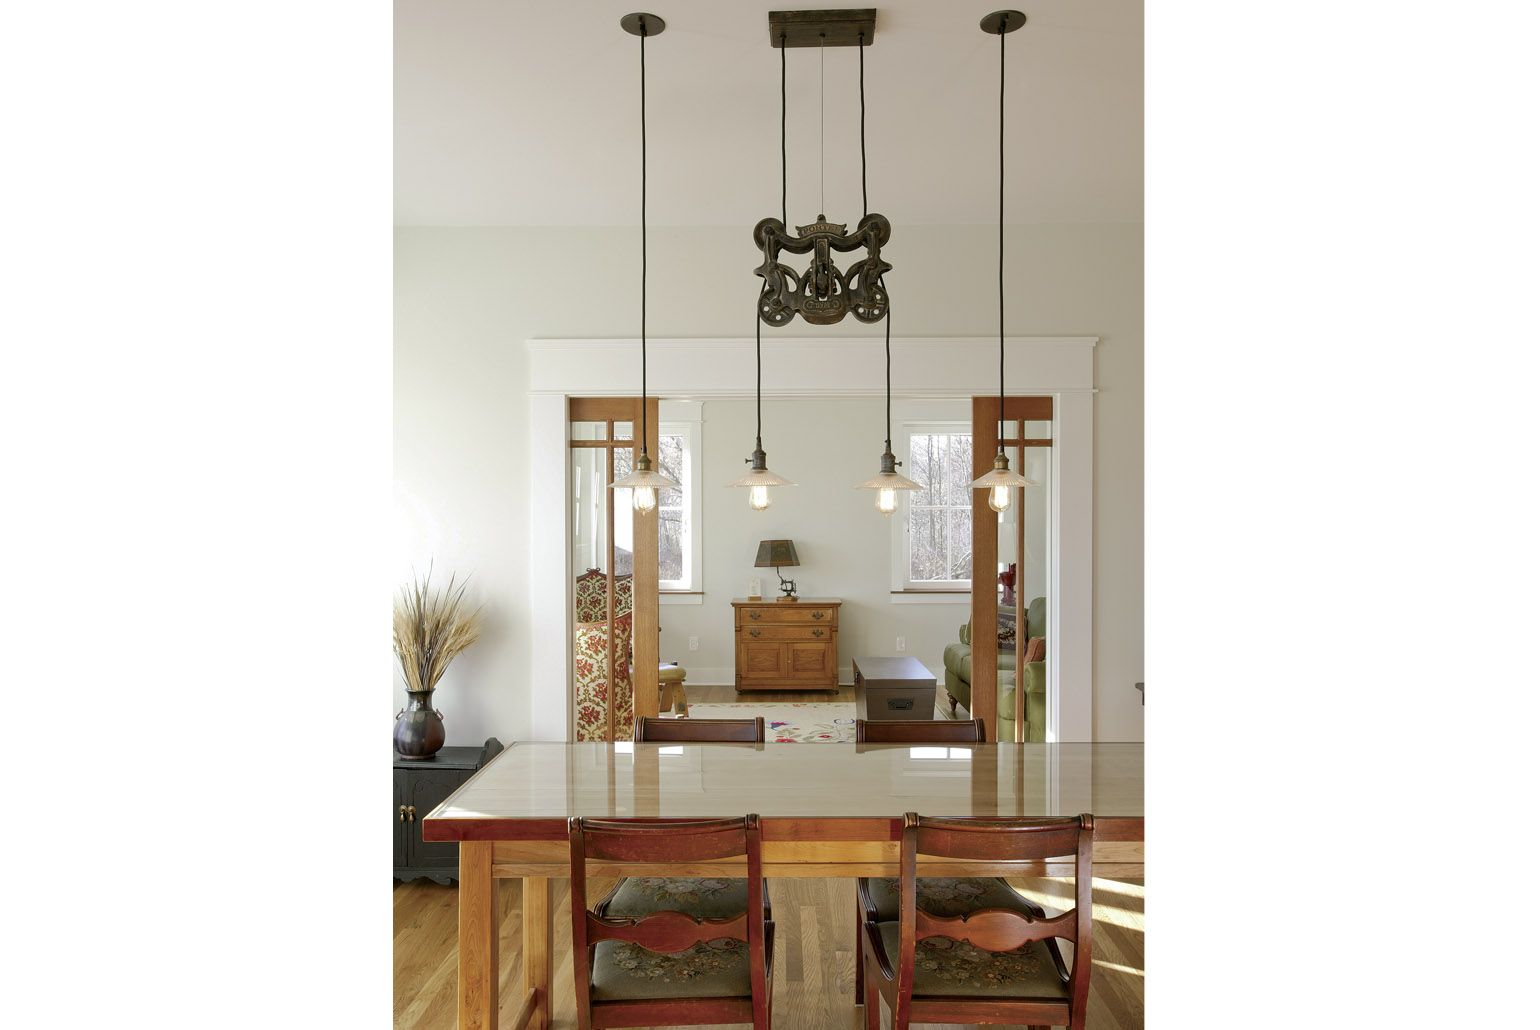 A Dining Room Light By Restoration Hardware Anchors The Simple Living Spaces Of This New Farmhouse